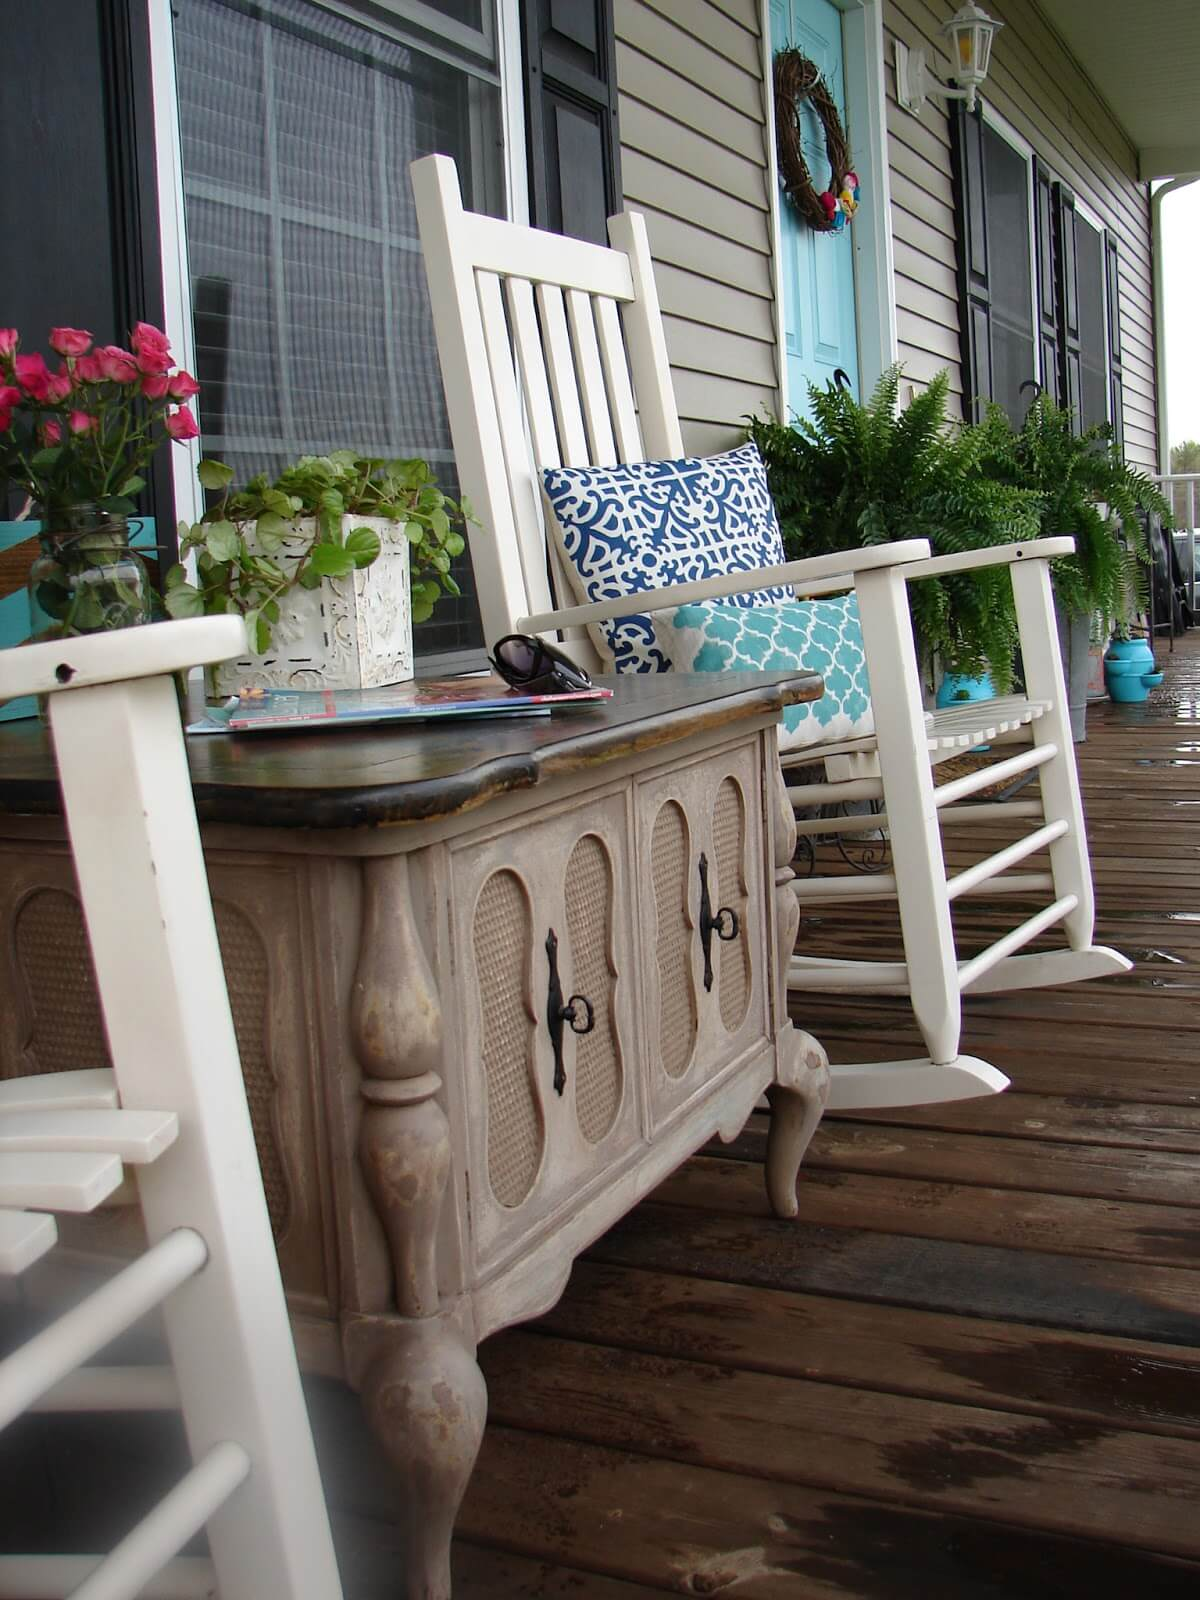 Wooden Table, Rocking Chairs, and Patterned Pillows